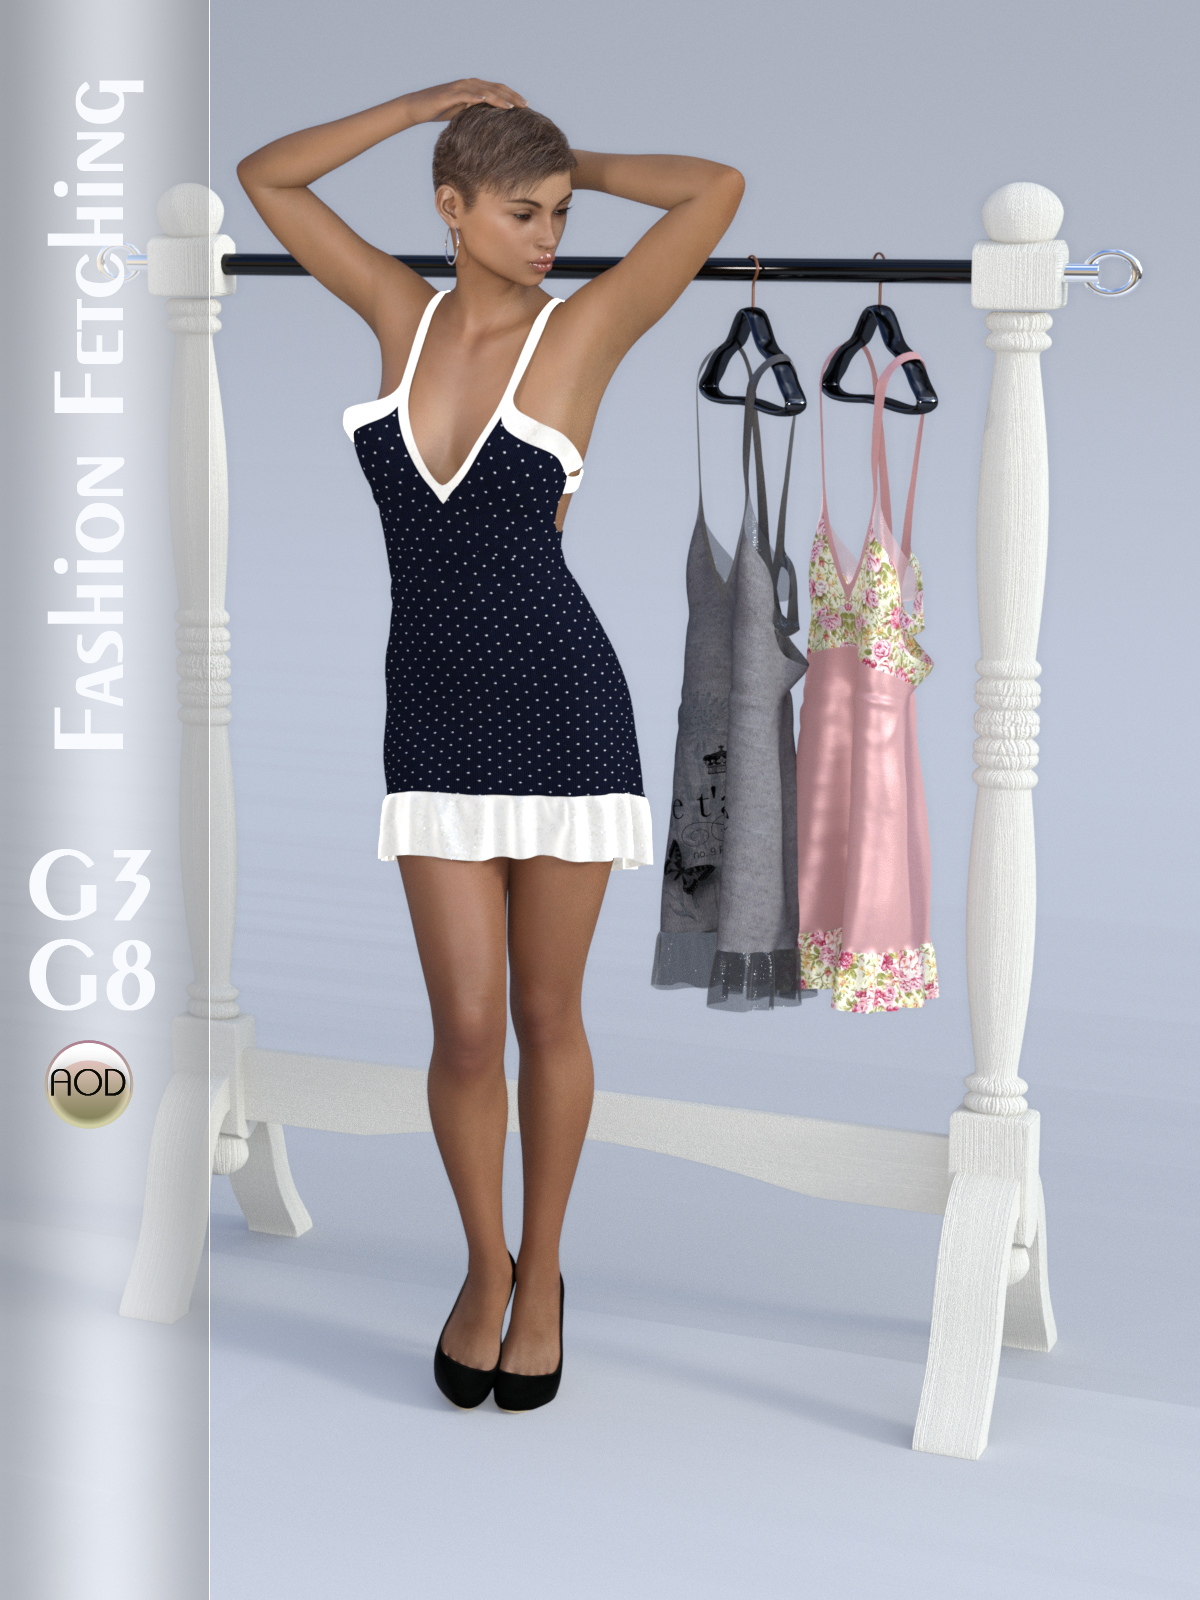 Fashion: Fetching G3/G8